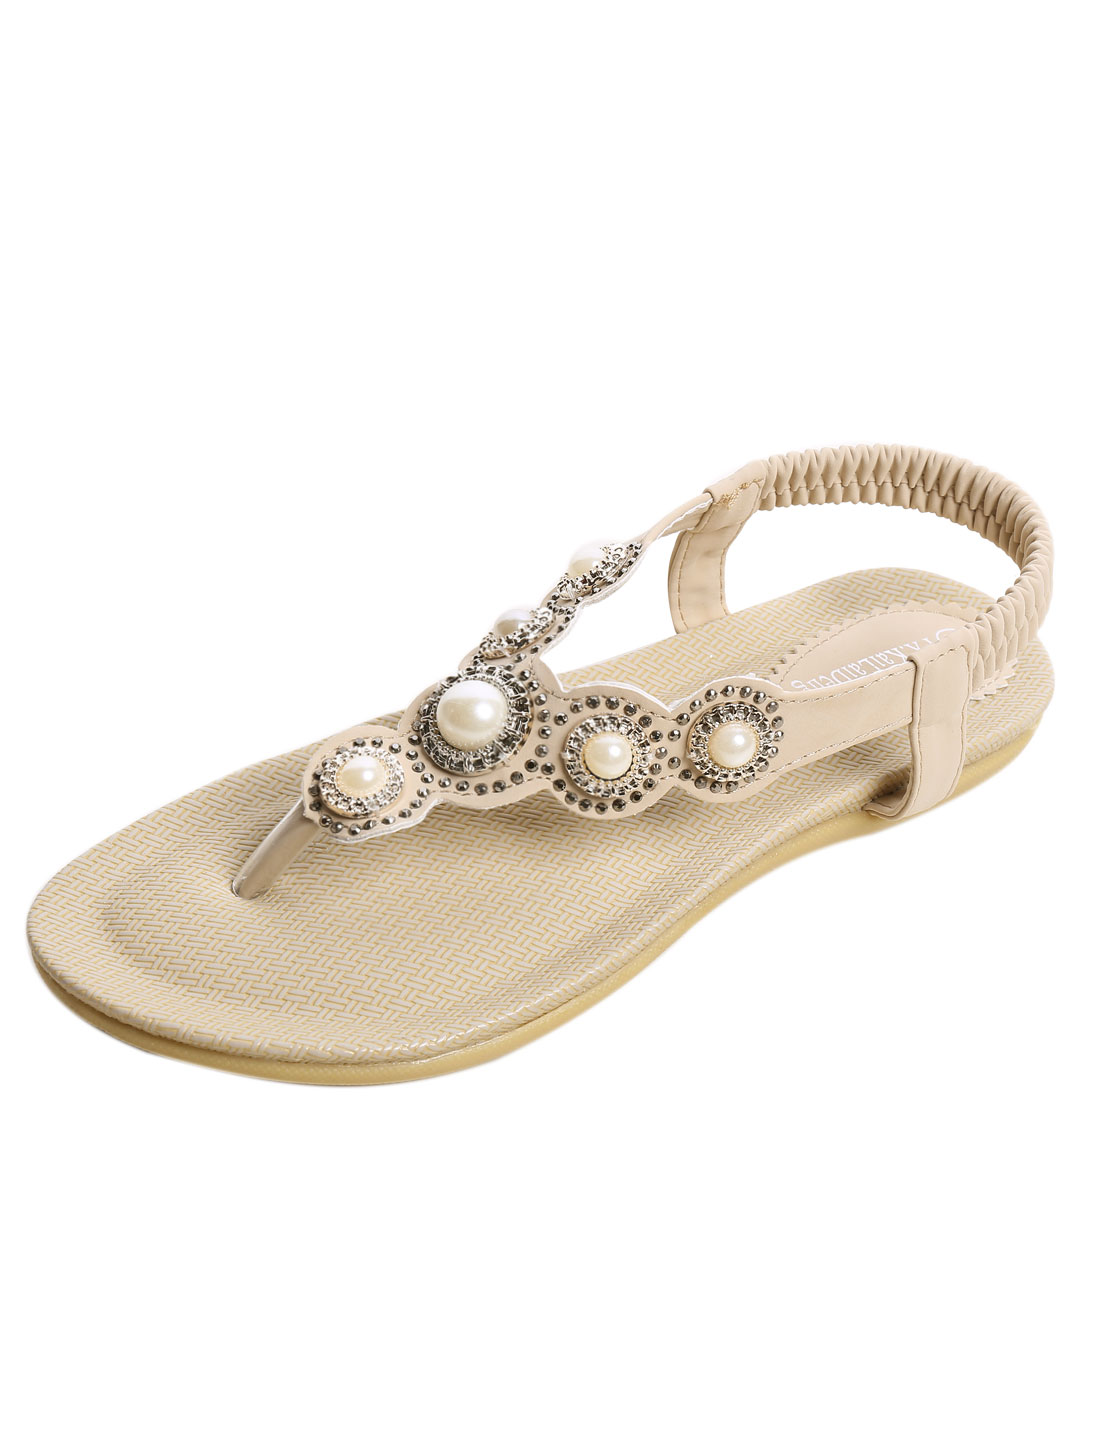 Ladies Rhinestones Beaded Textured Outside Summer Sandals Beige US 8